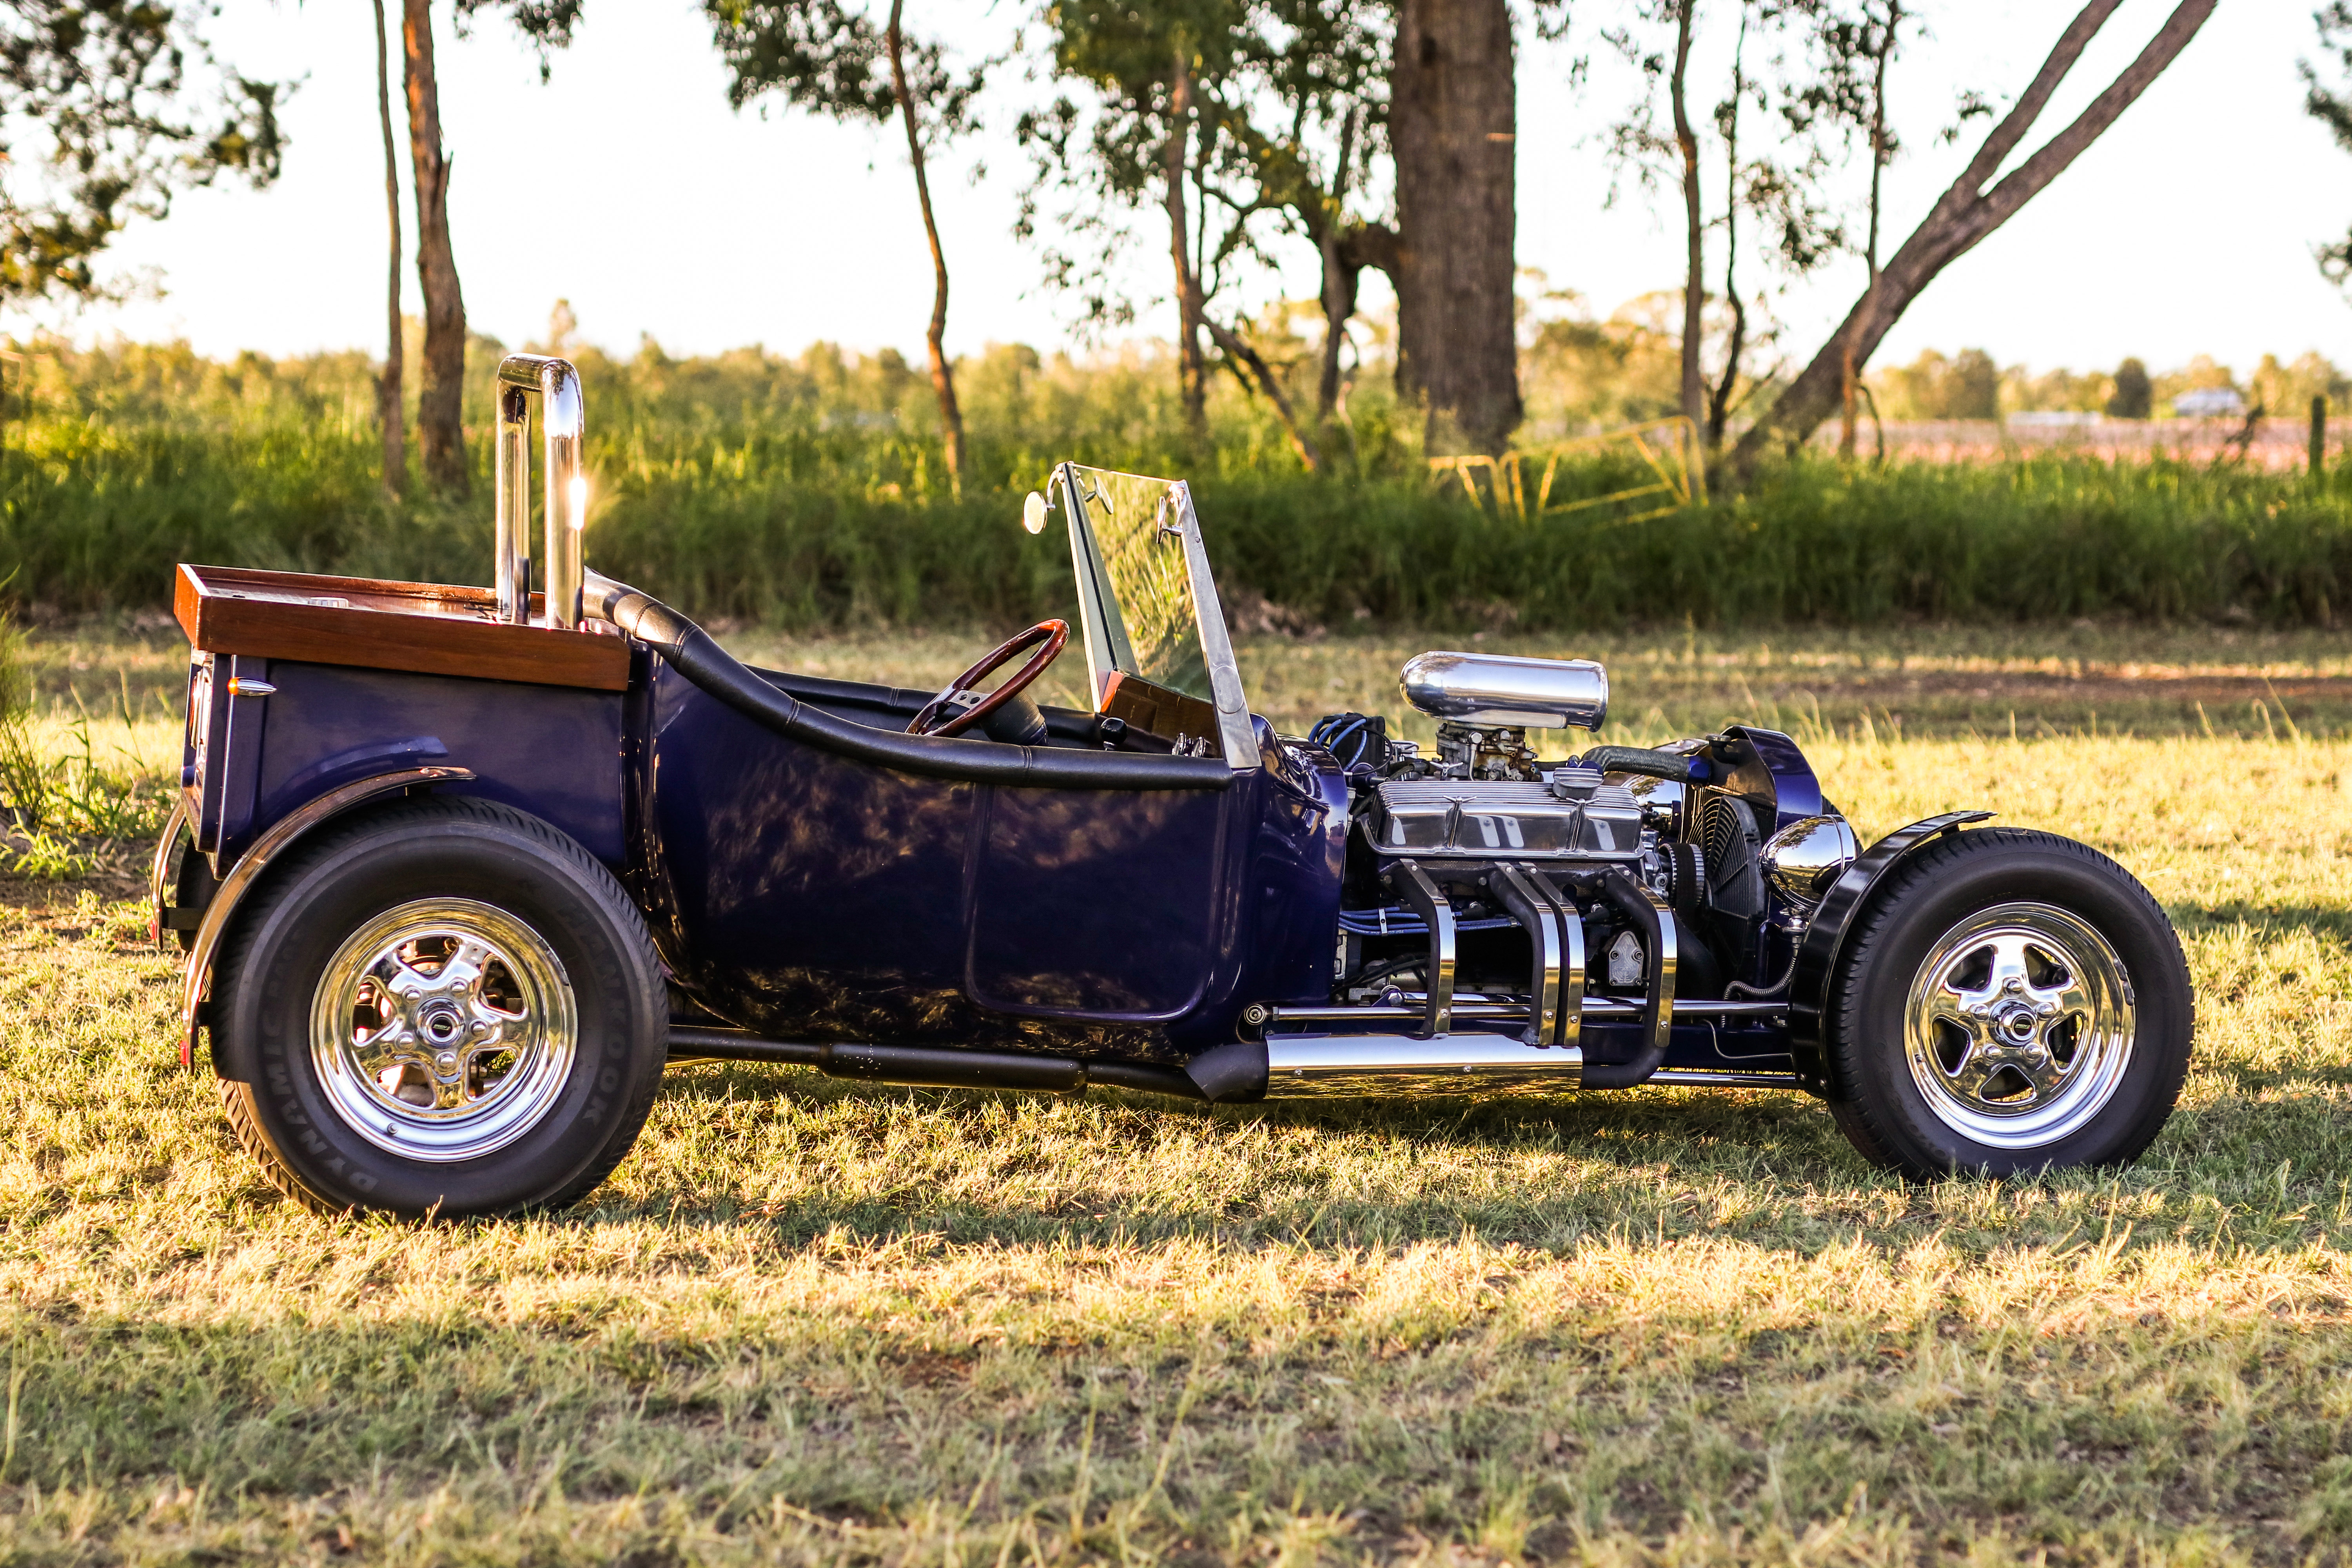 Vintage Cars for sale in Australia - JUST CARS